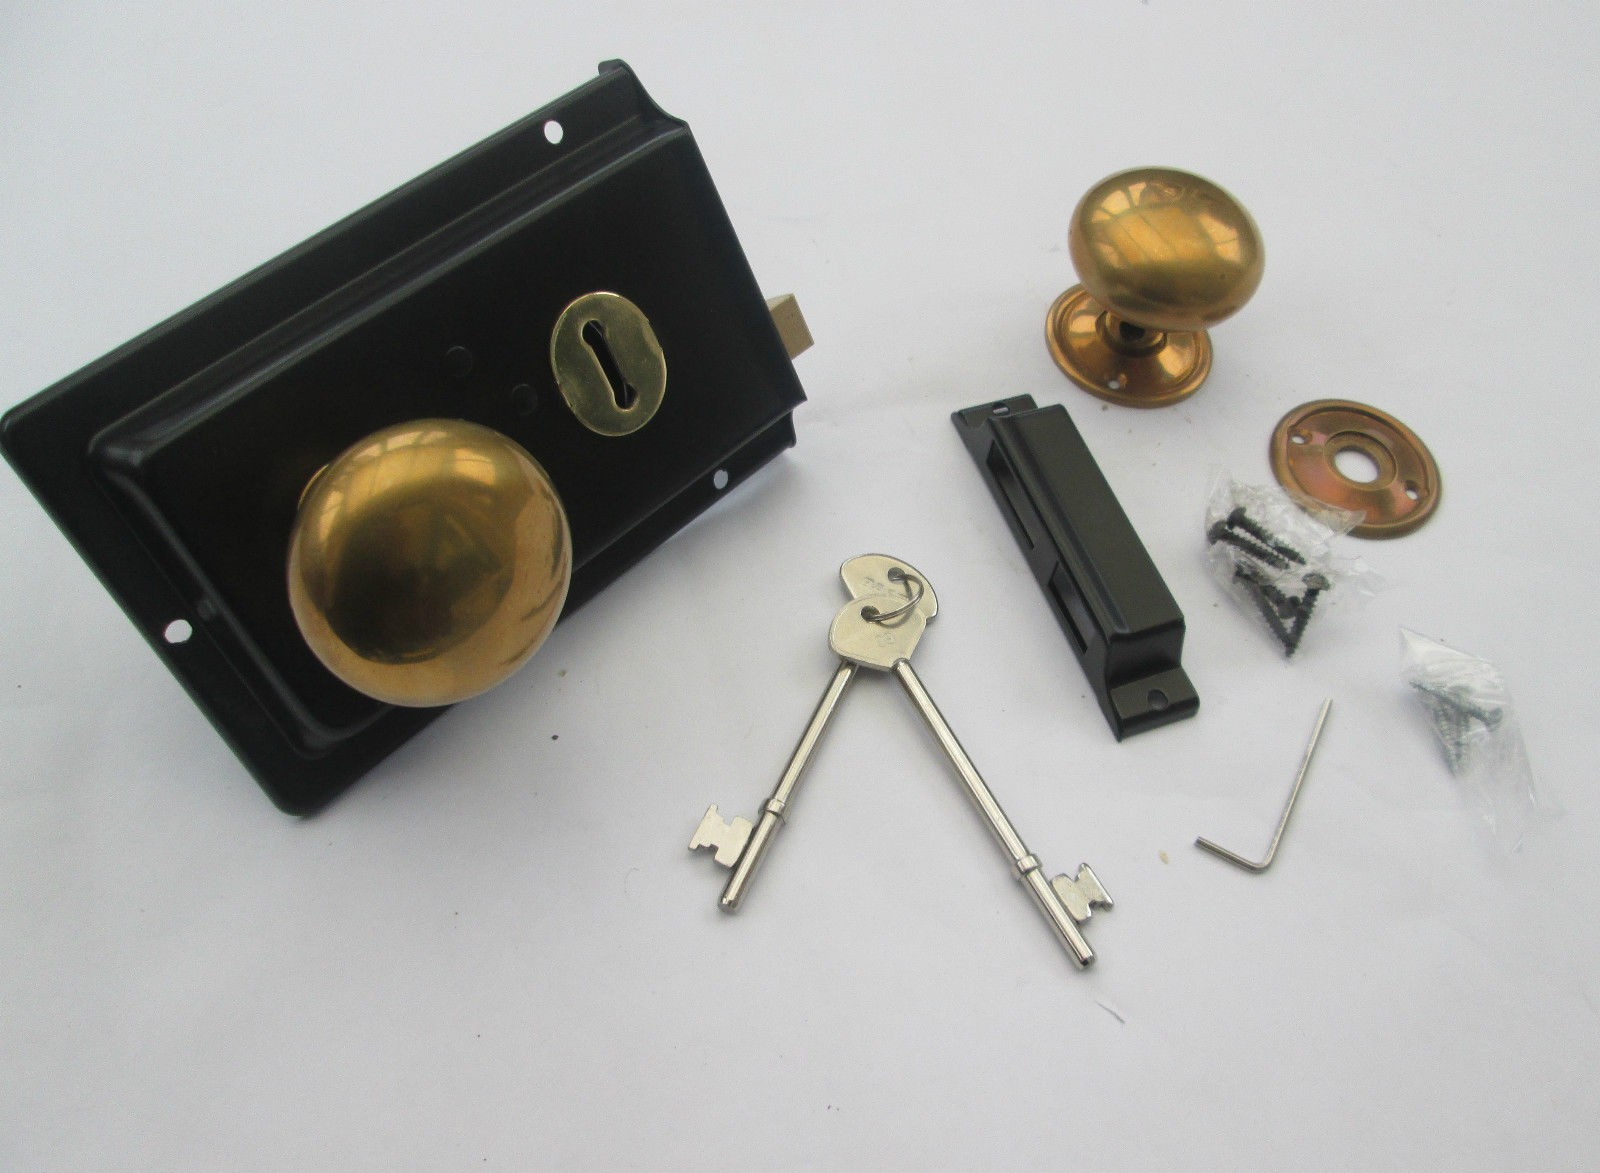 lightbox moreview & Replica 1900u0027s rim lock set | Ironmongery World pezcame.com